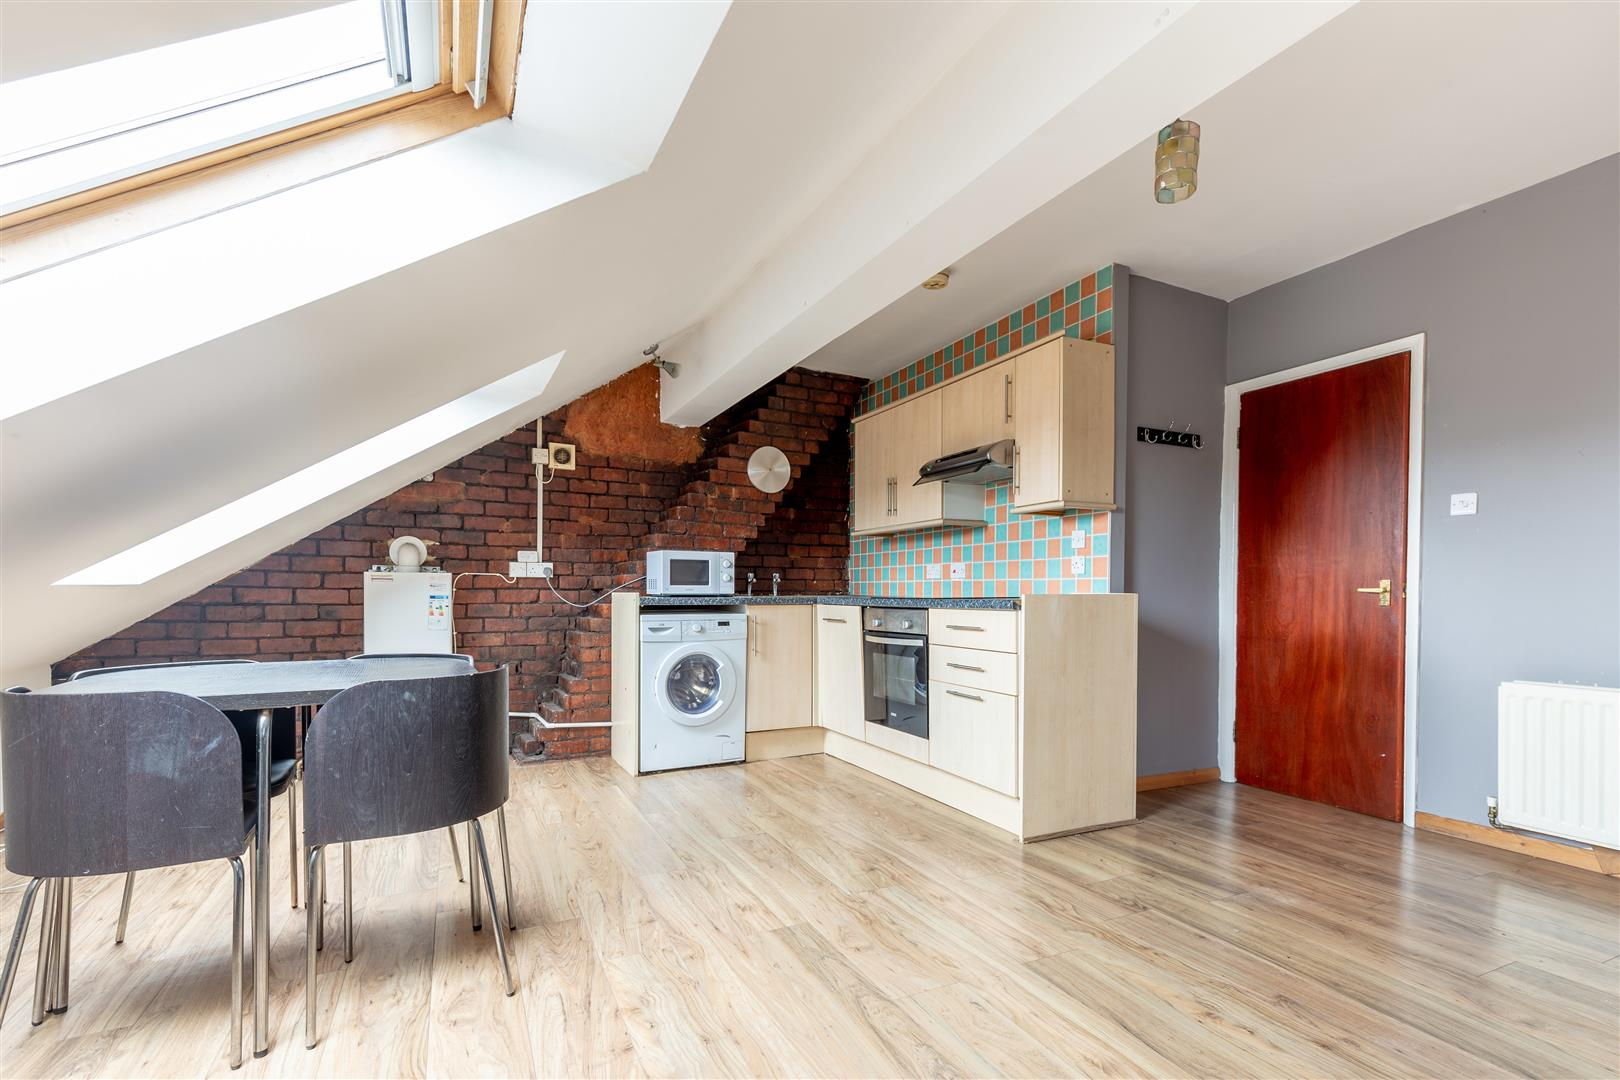 3 bed flat to rent in Newcastle Upon Tyne, NE6 5SX  - Property Image 1